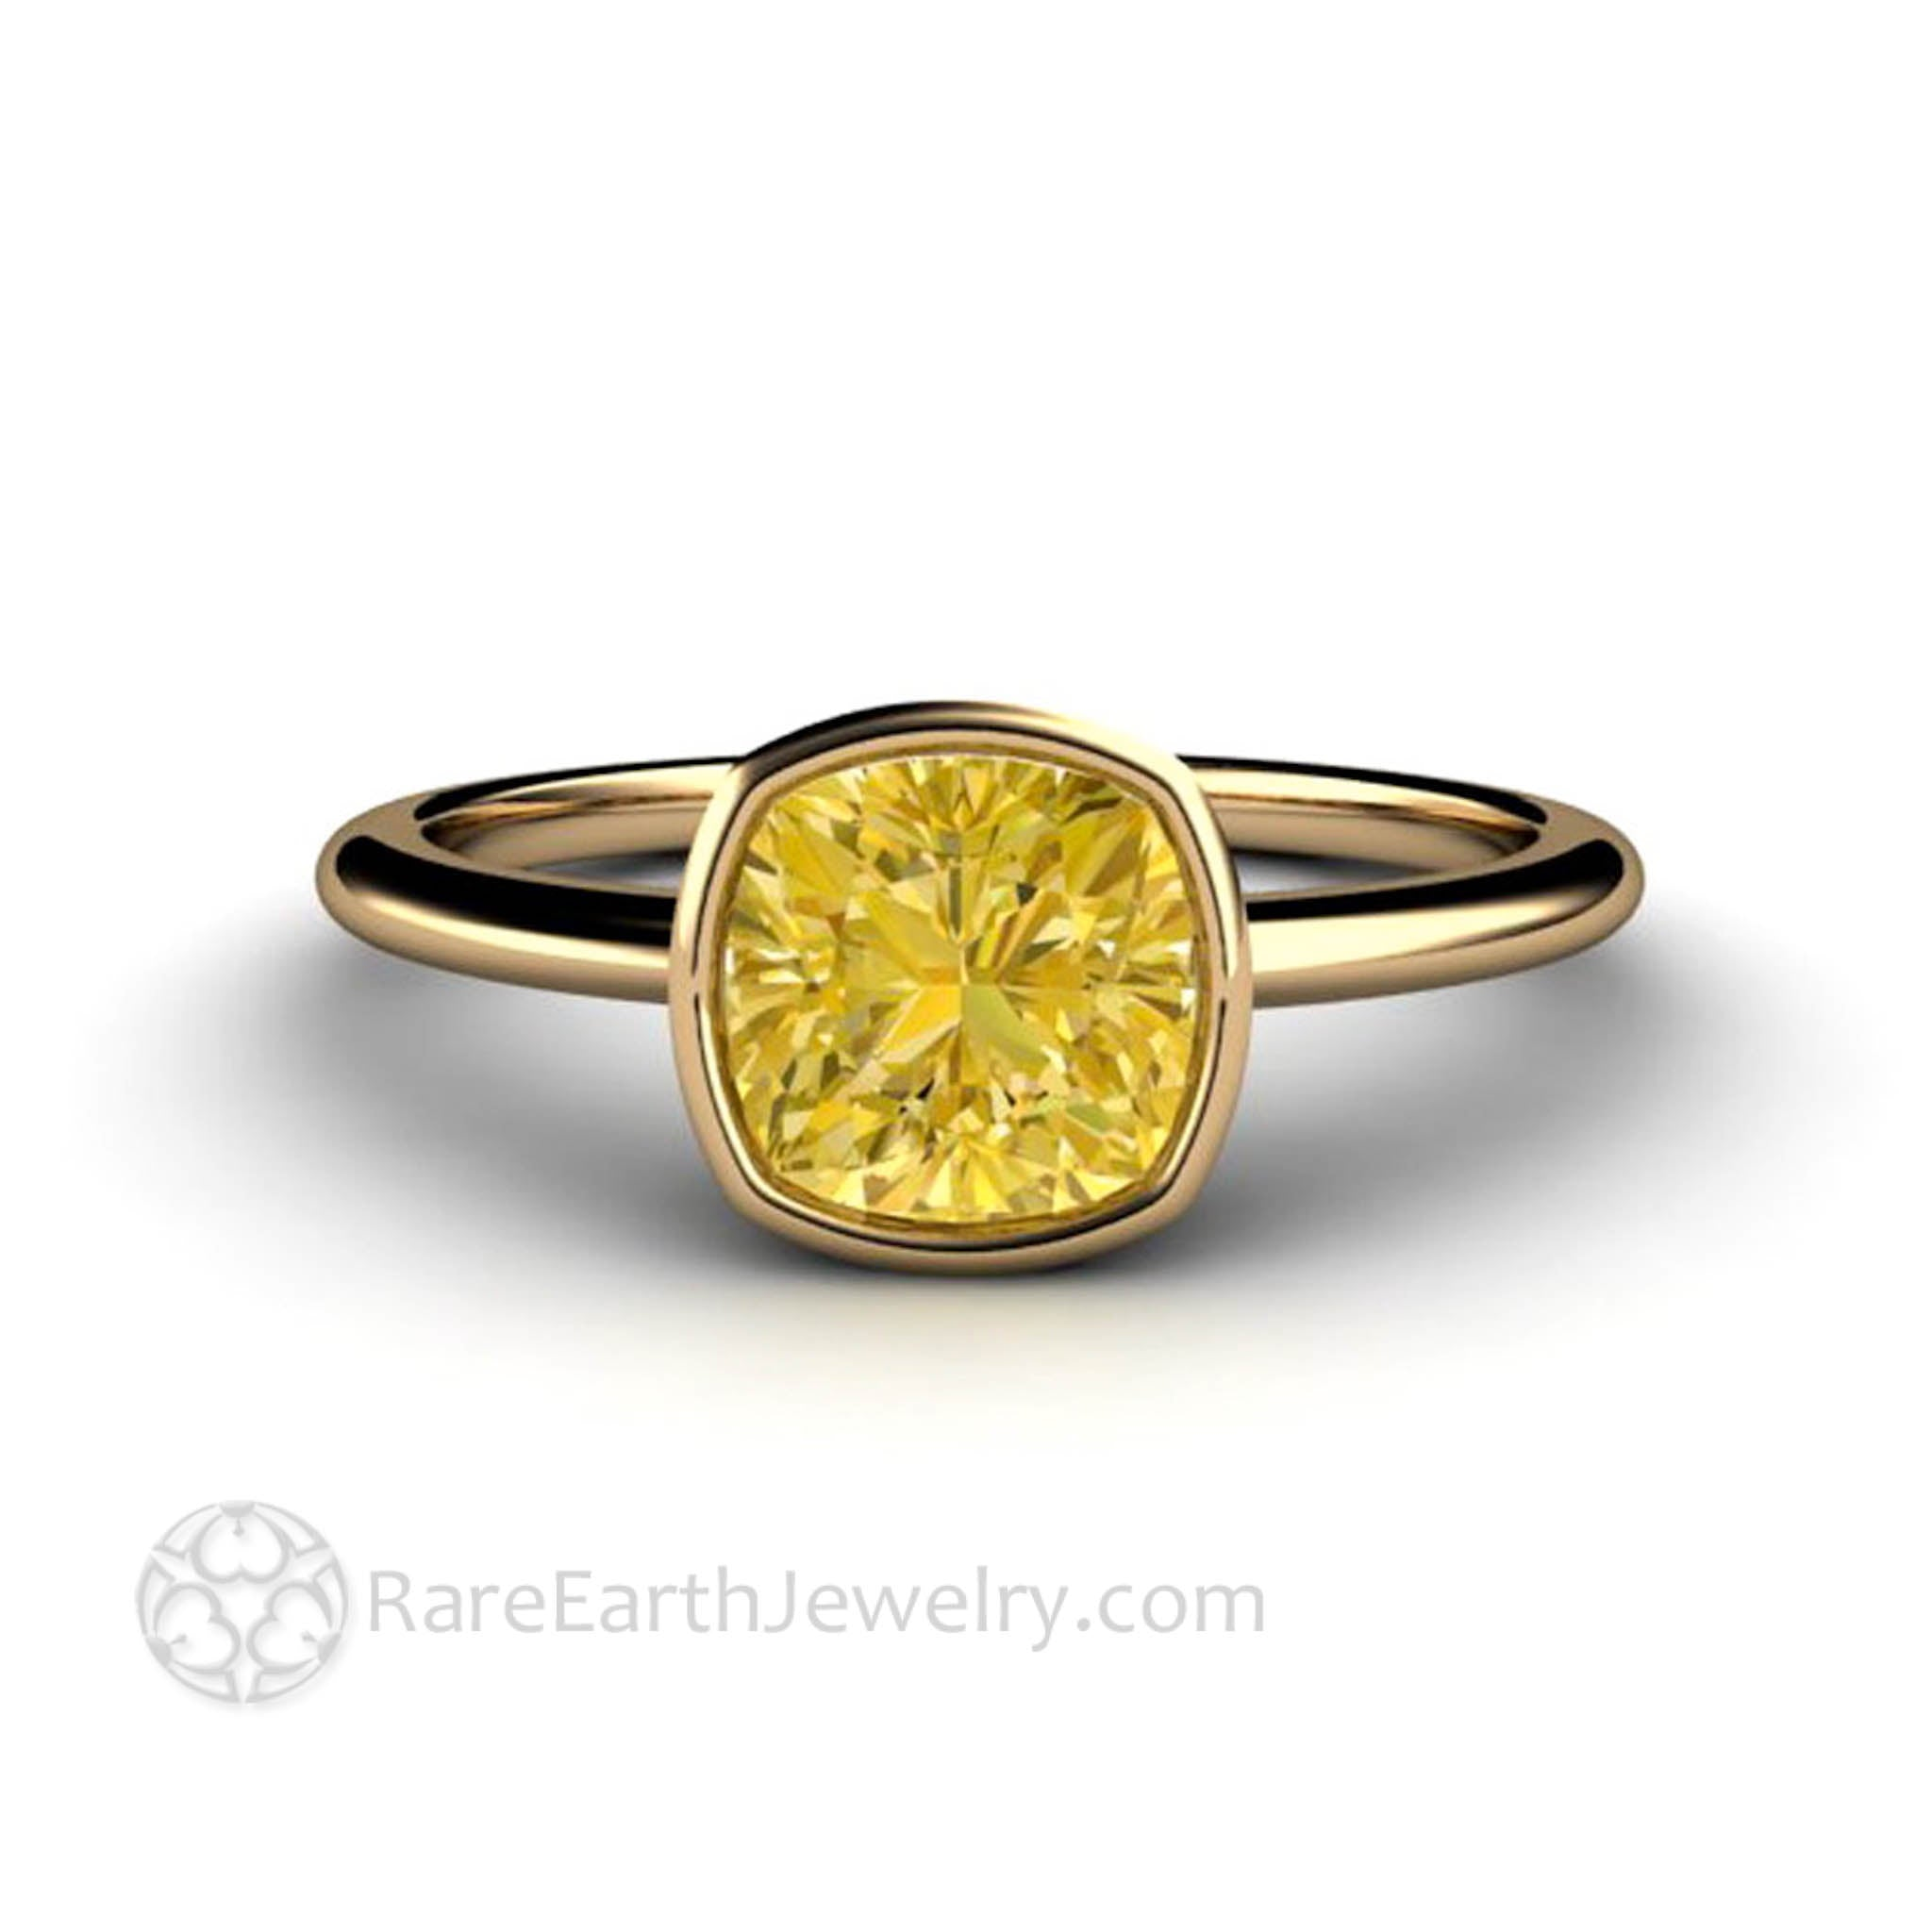 Colored Gemstone Engagement Rings Rare Earth Jewelry Page 2